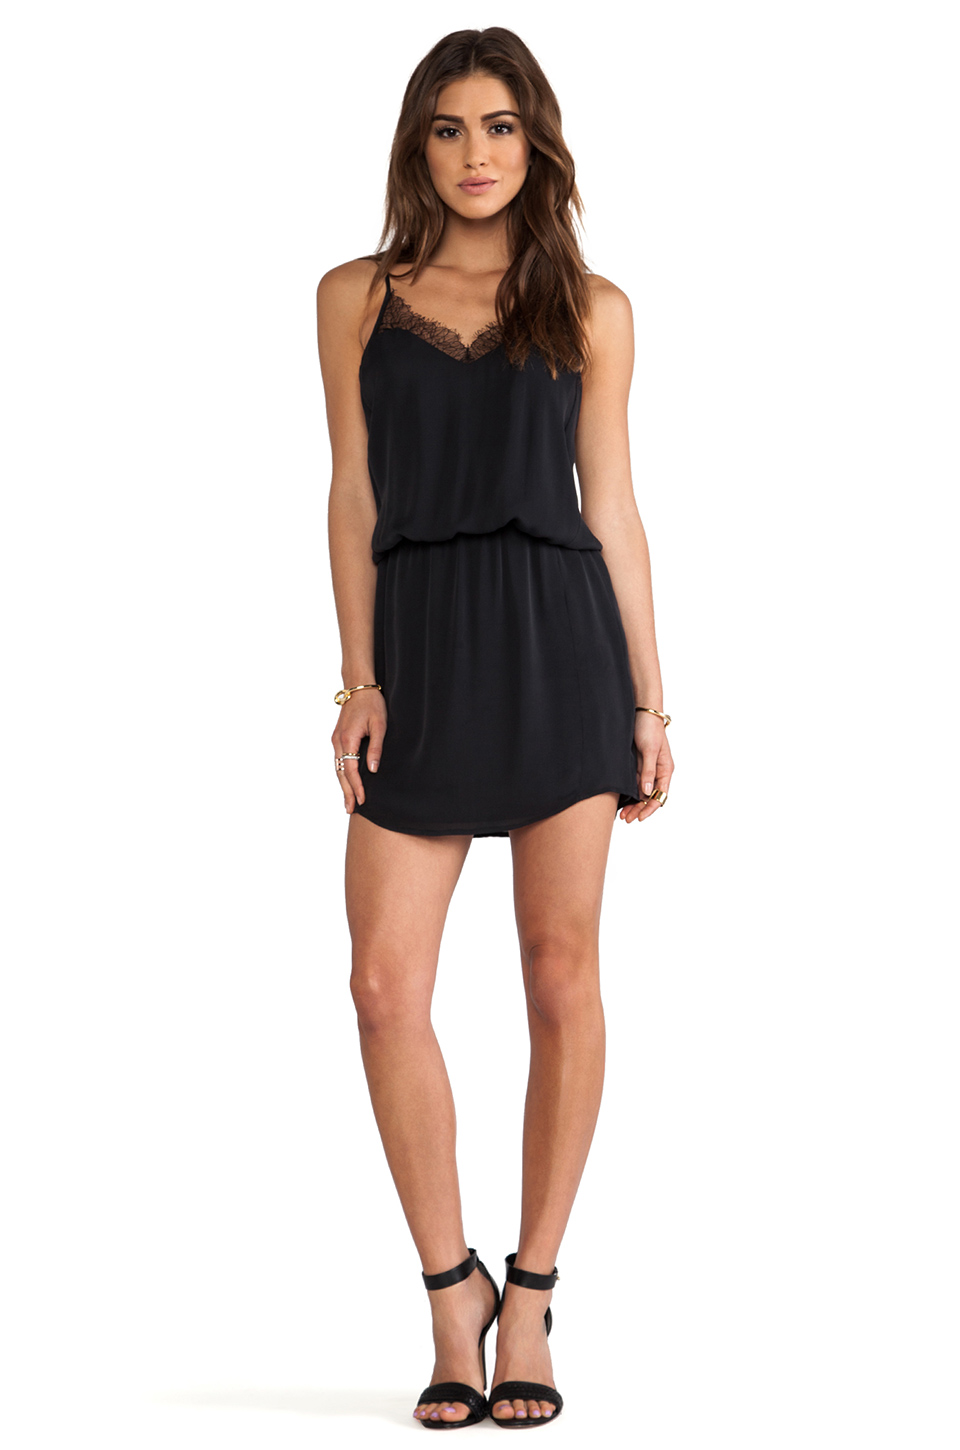 Mason by Michelle Mason Lace Cami Dress in Black from REVOLVEclothing.com